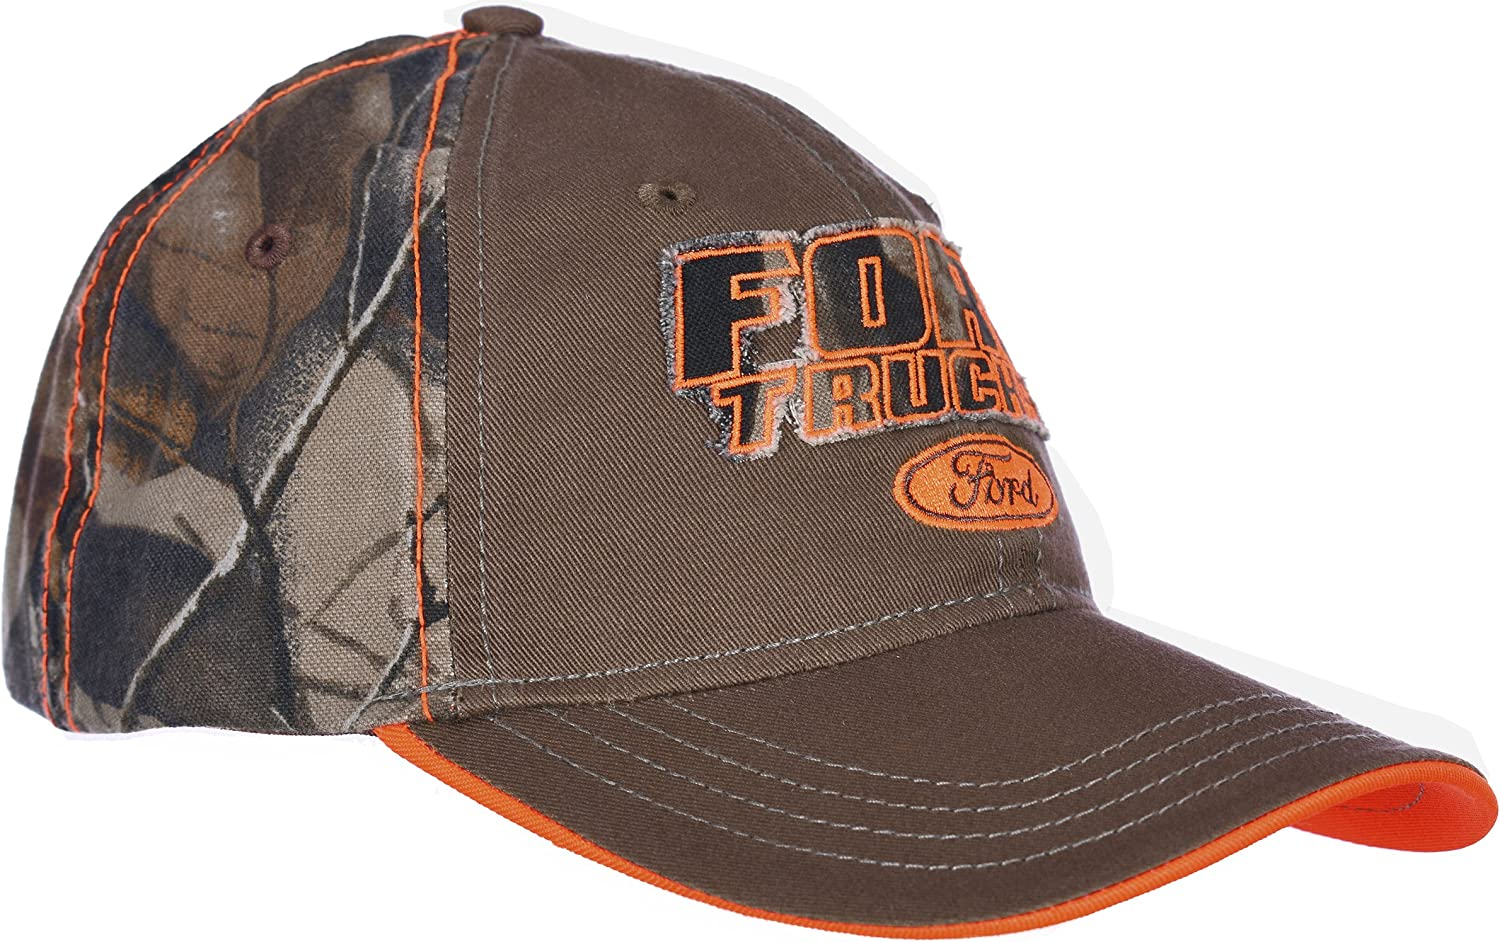 H3 Headwear Ford Truck Baseball Cap Embroidered Real Tree Camouflage Hat